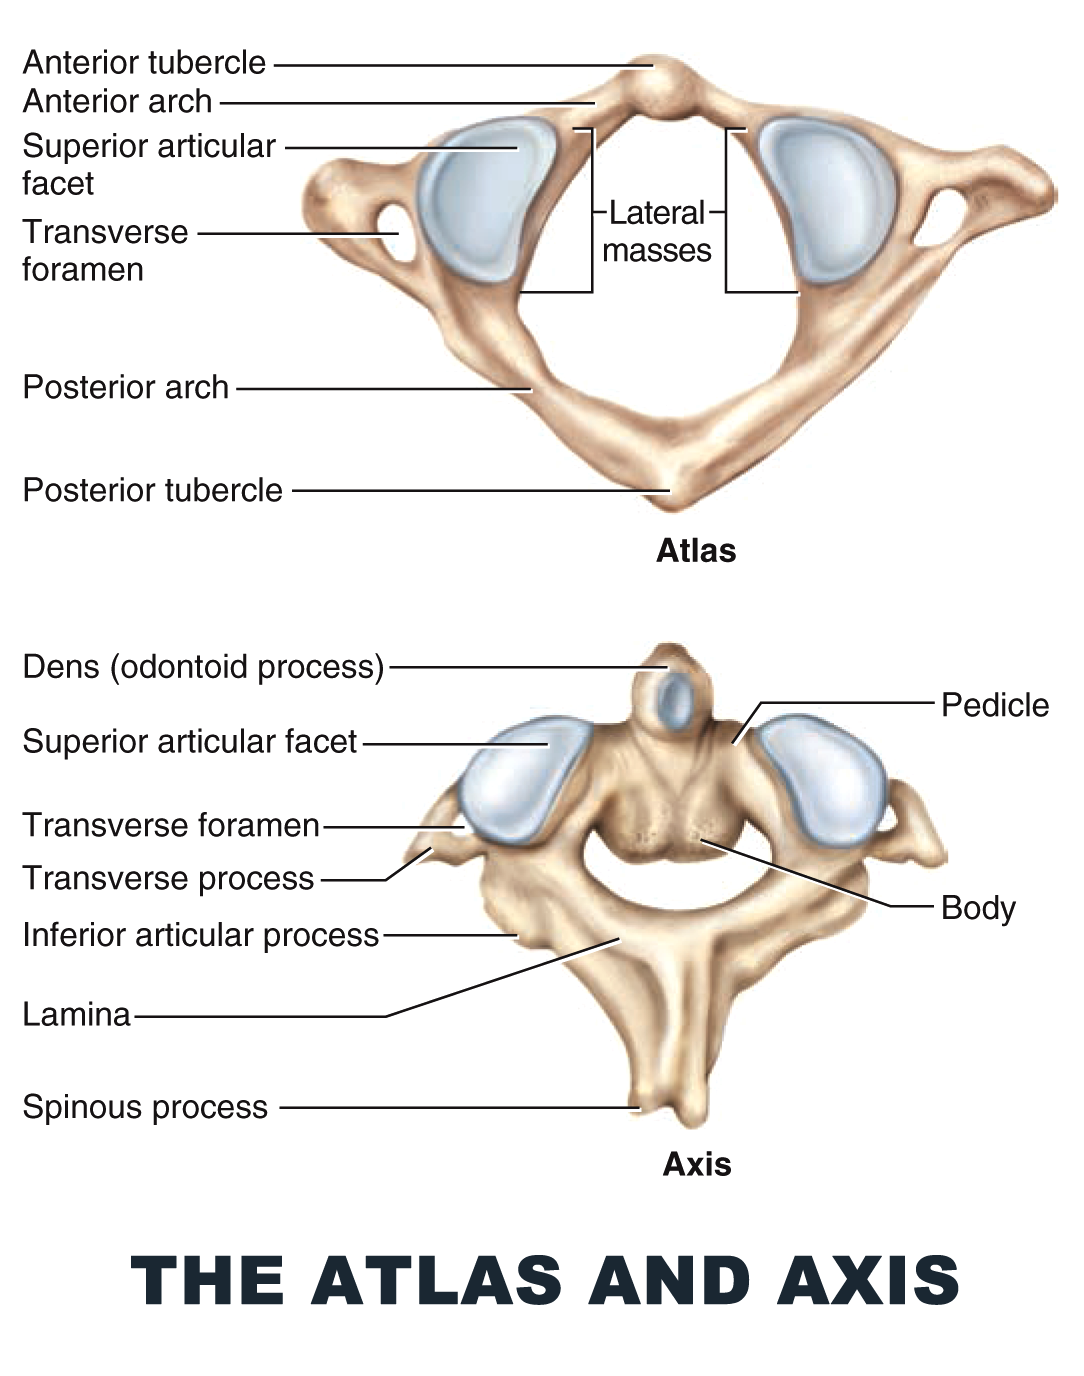 The Atlas and Axis - #anatomy images illustrations #anatomy images ...